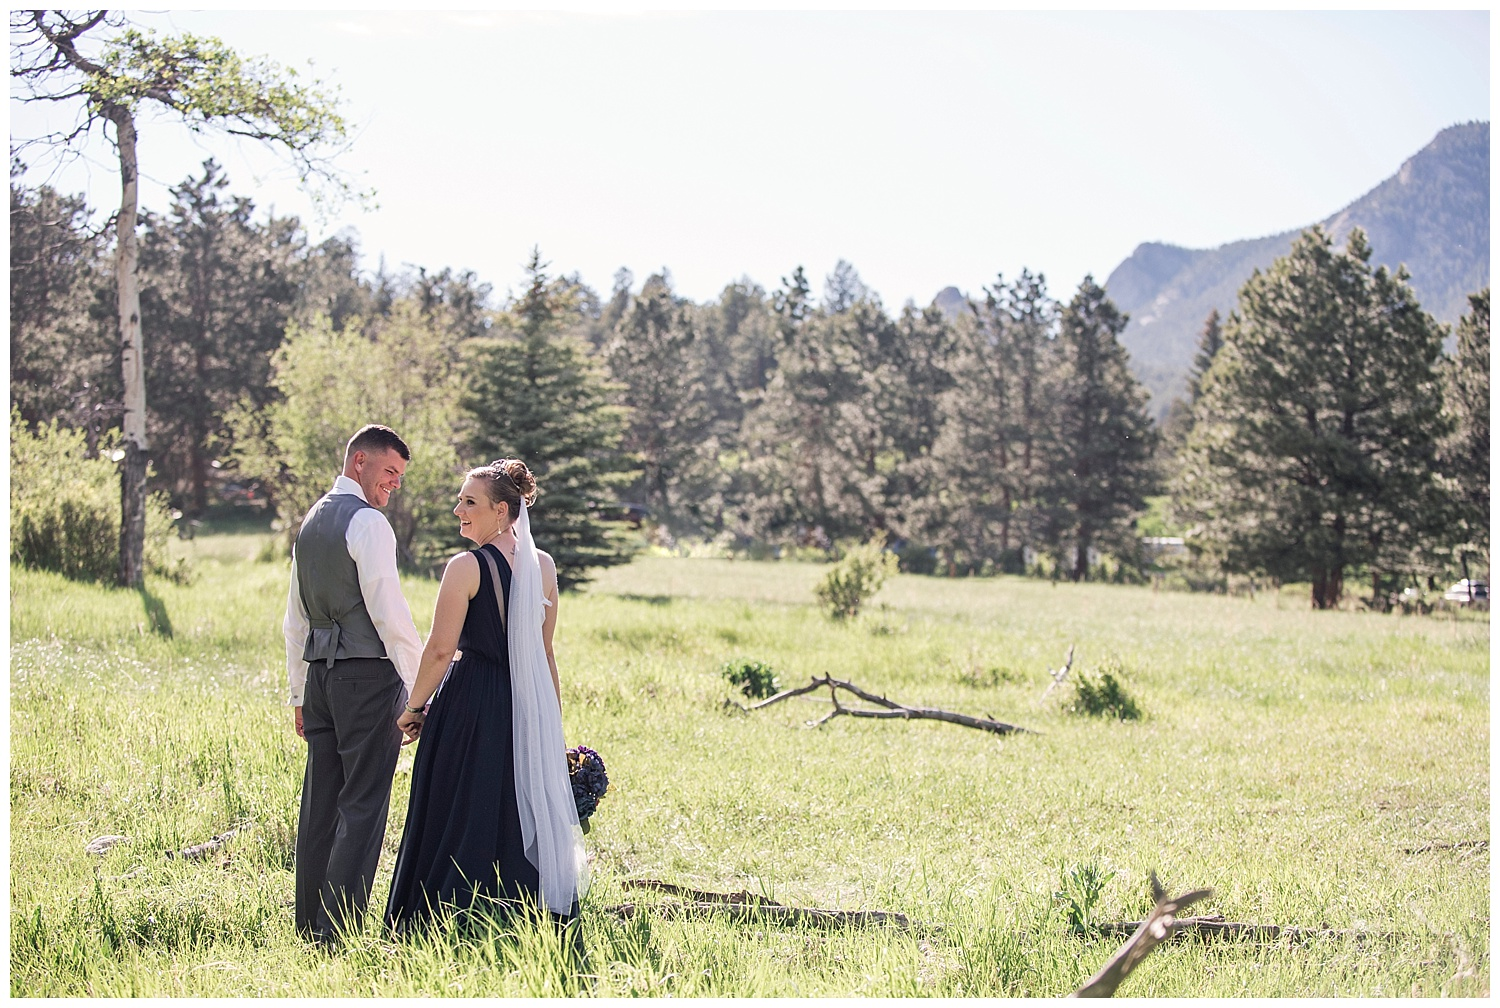 Adventure_Colorado_Wedding_Photographer_Intimate_Weddings_Photography_028.jpg